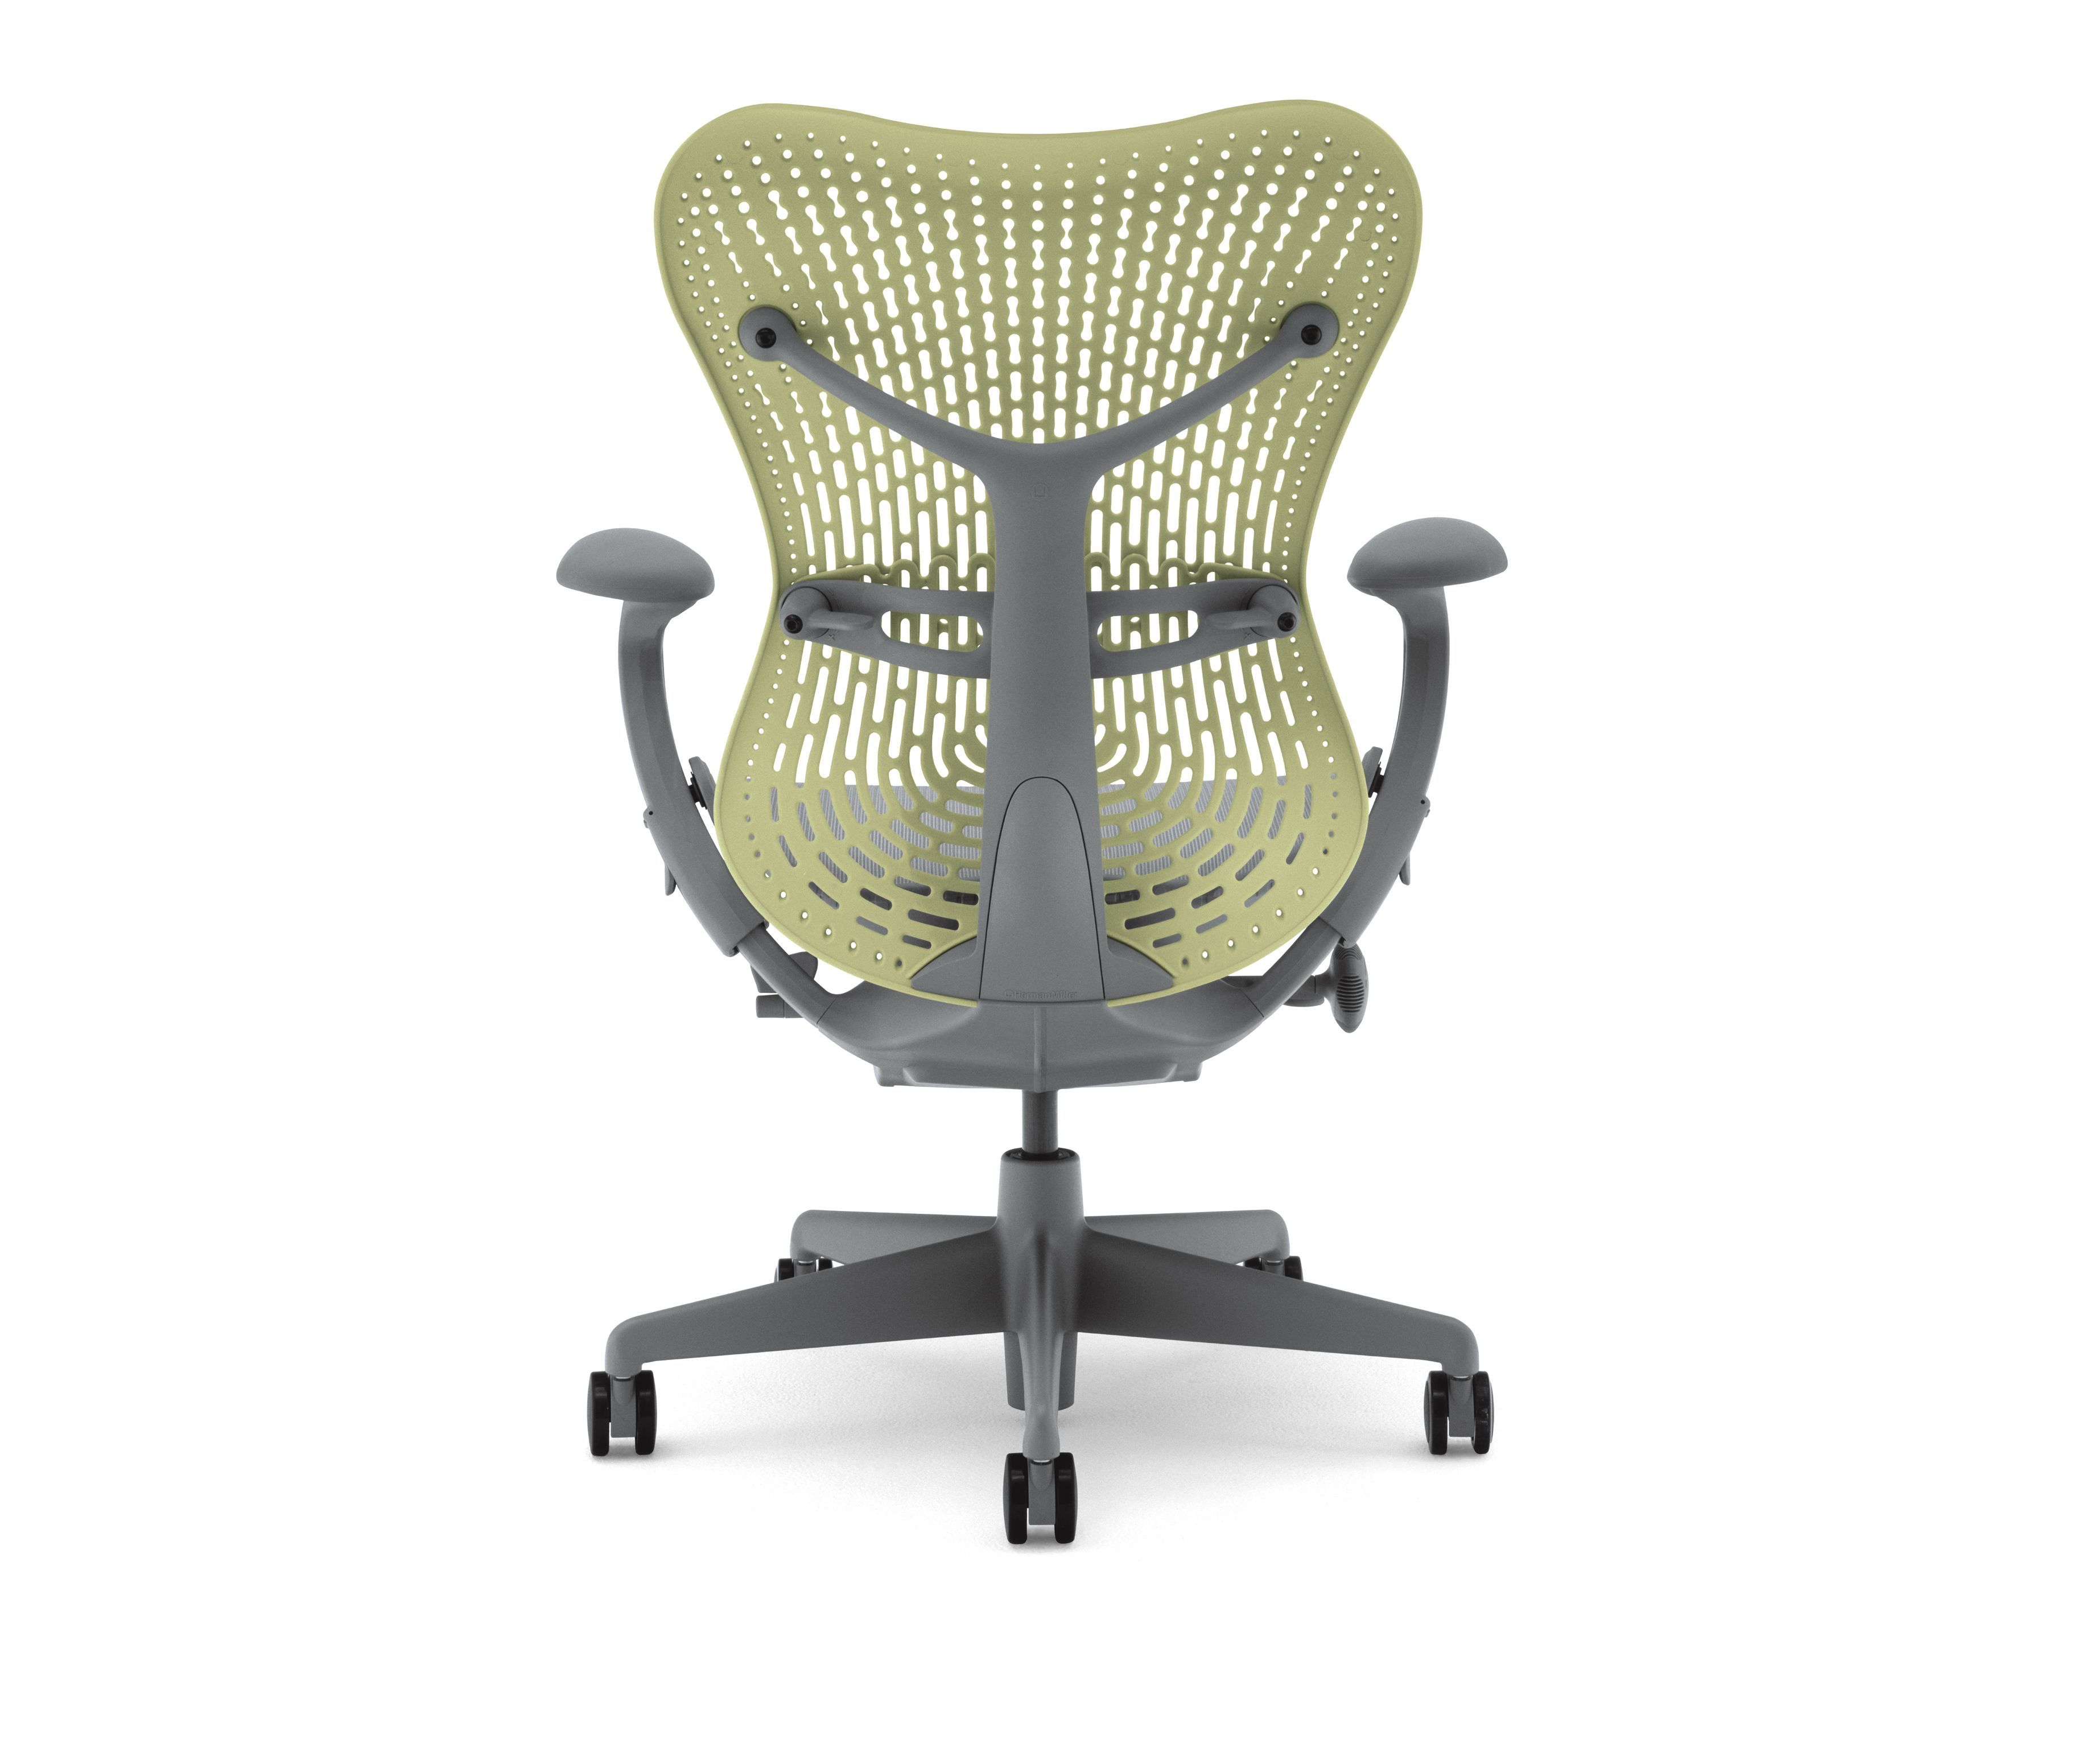 Mirra 2 chair contains up to 46% recycled content 21% post